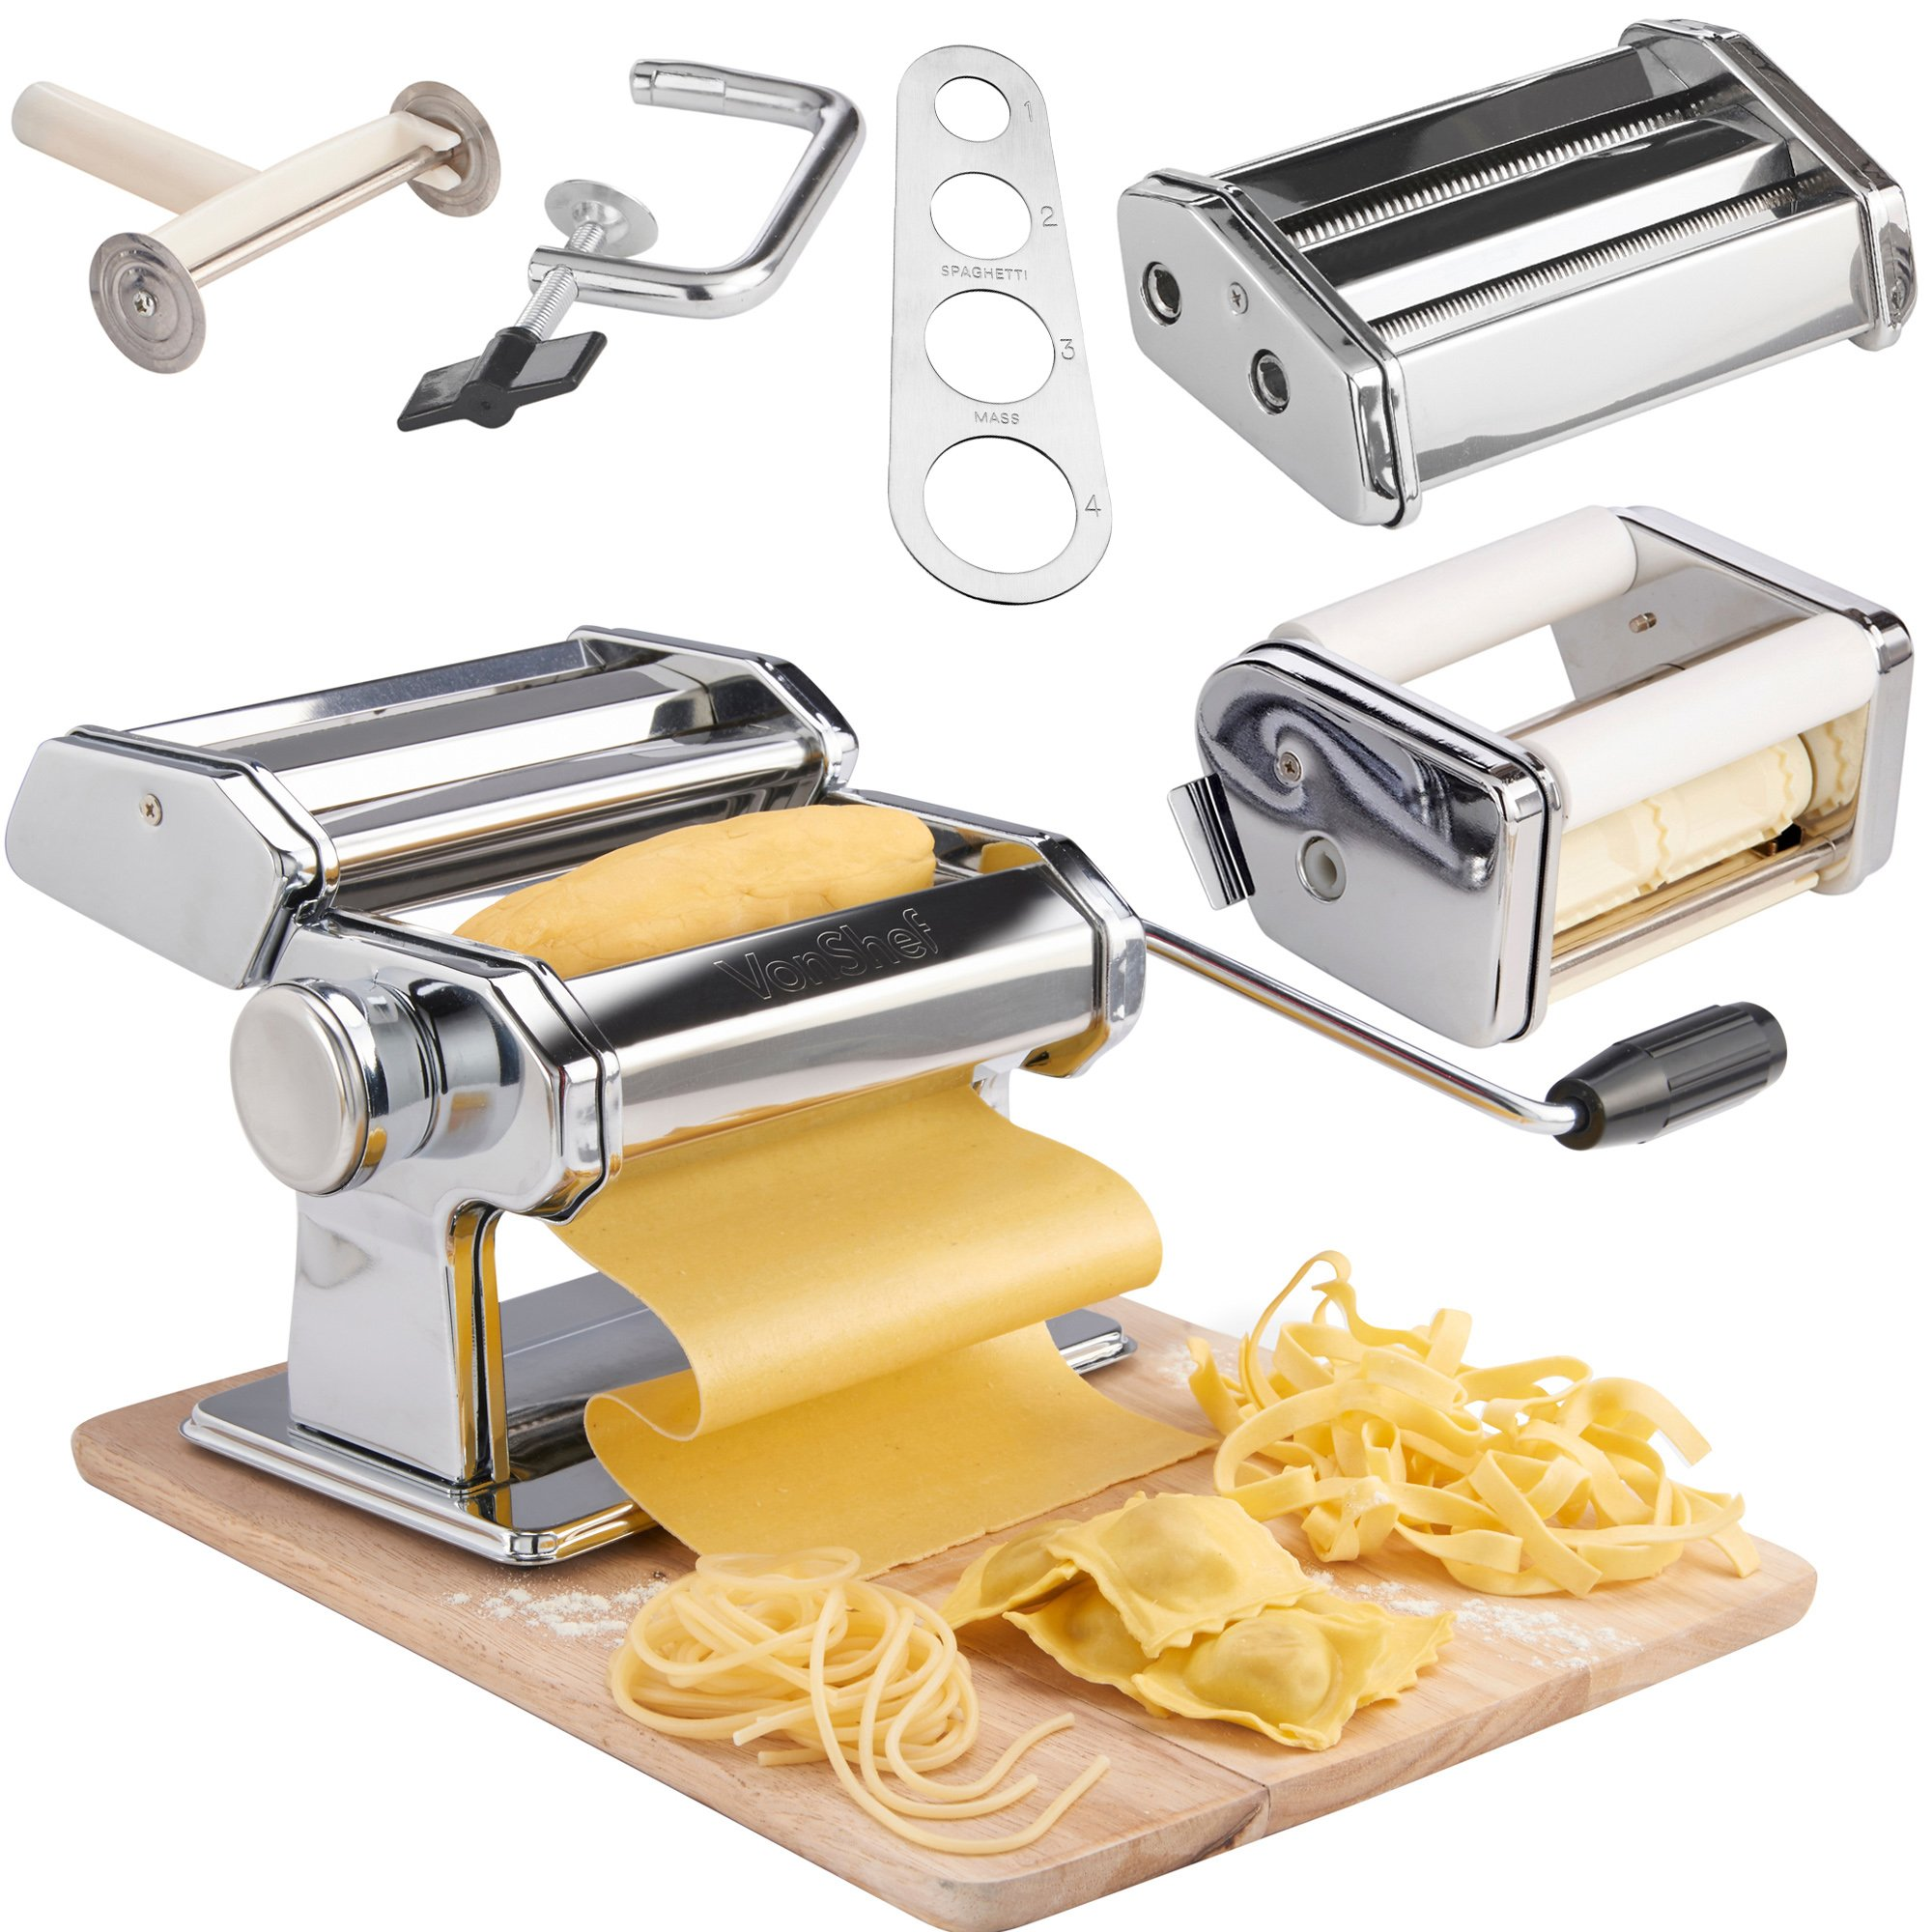 VonShef Pasta Maker, 3 in 1 Pasta Machine Stainless Steel, Pasta Roller with 3 Cut Press Blade Settings, Table Top Clamp and Pasta Measuring Tool for Homemade Spaghetti, Fettuccini by VonShef